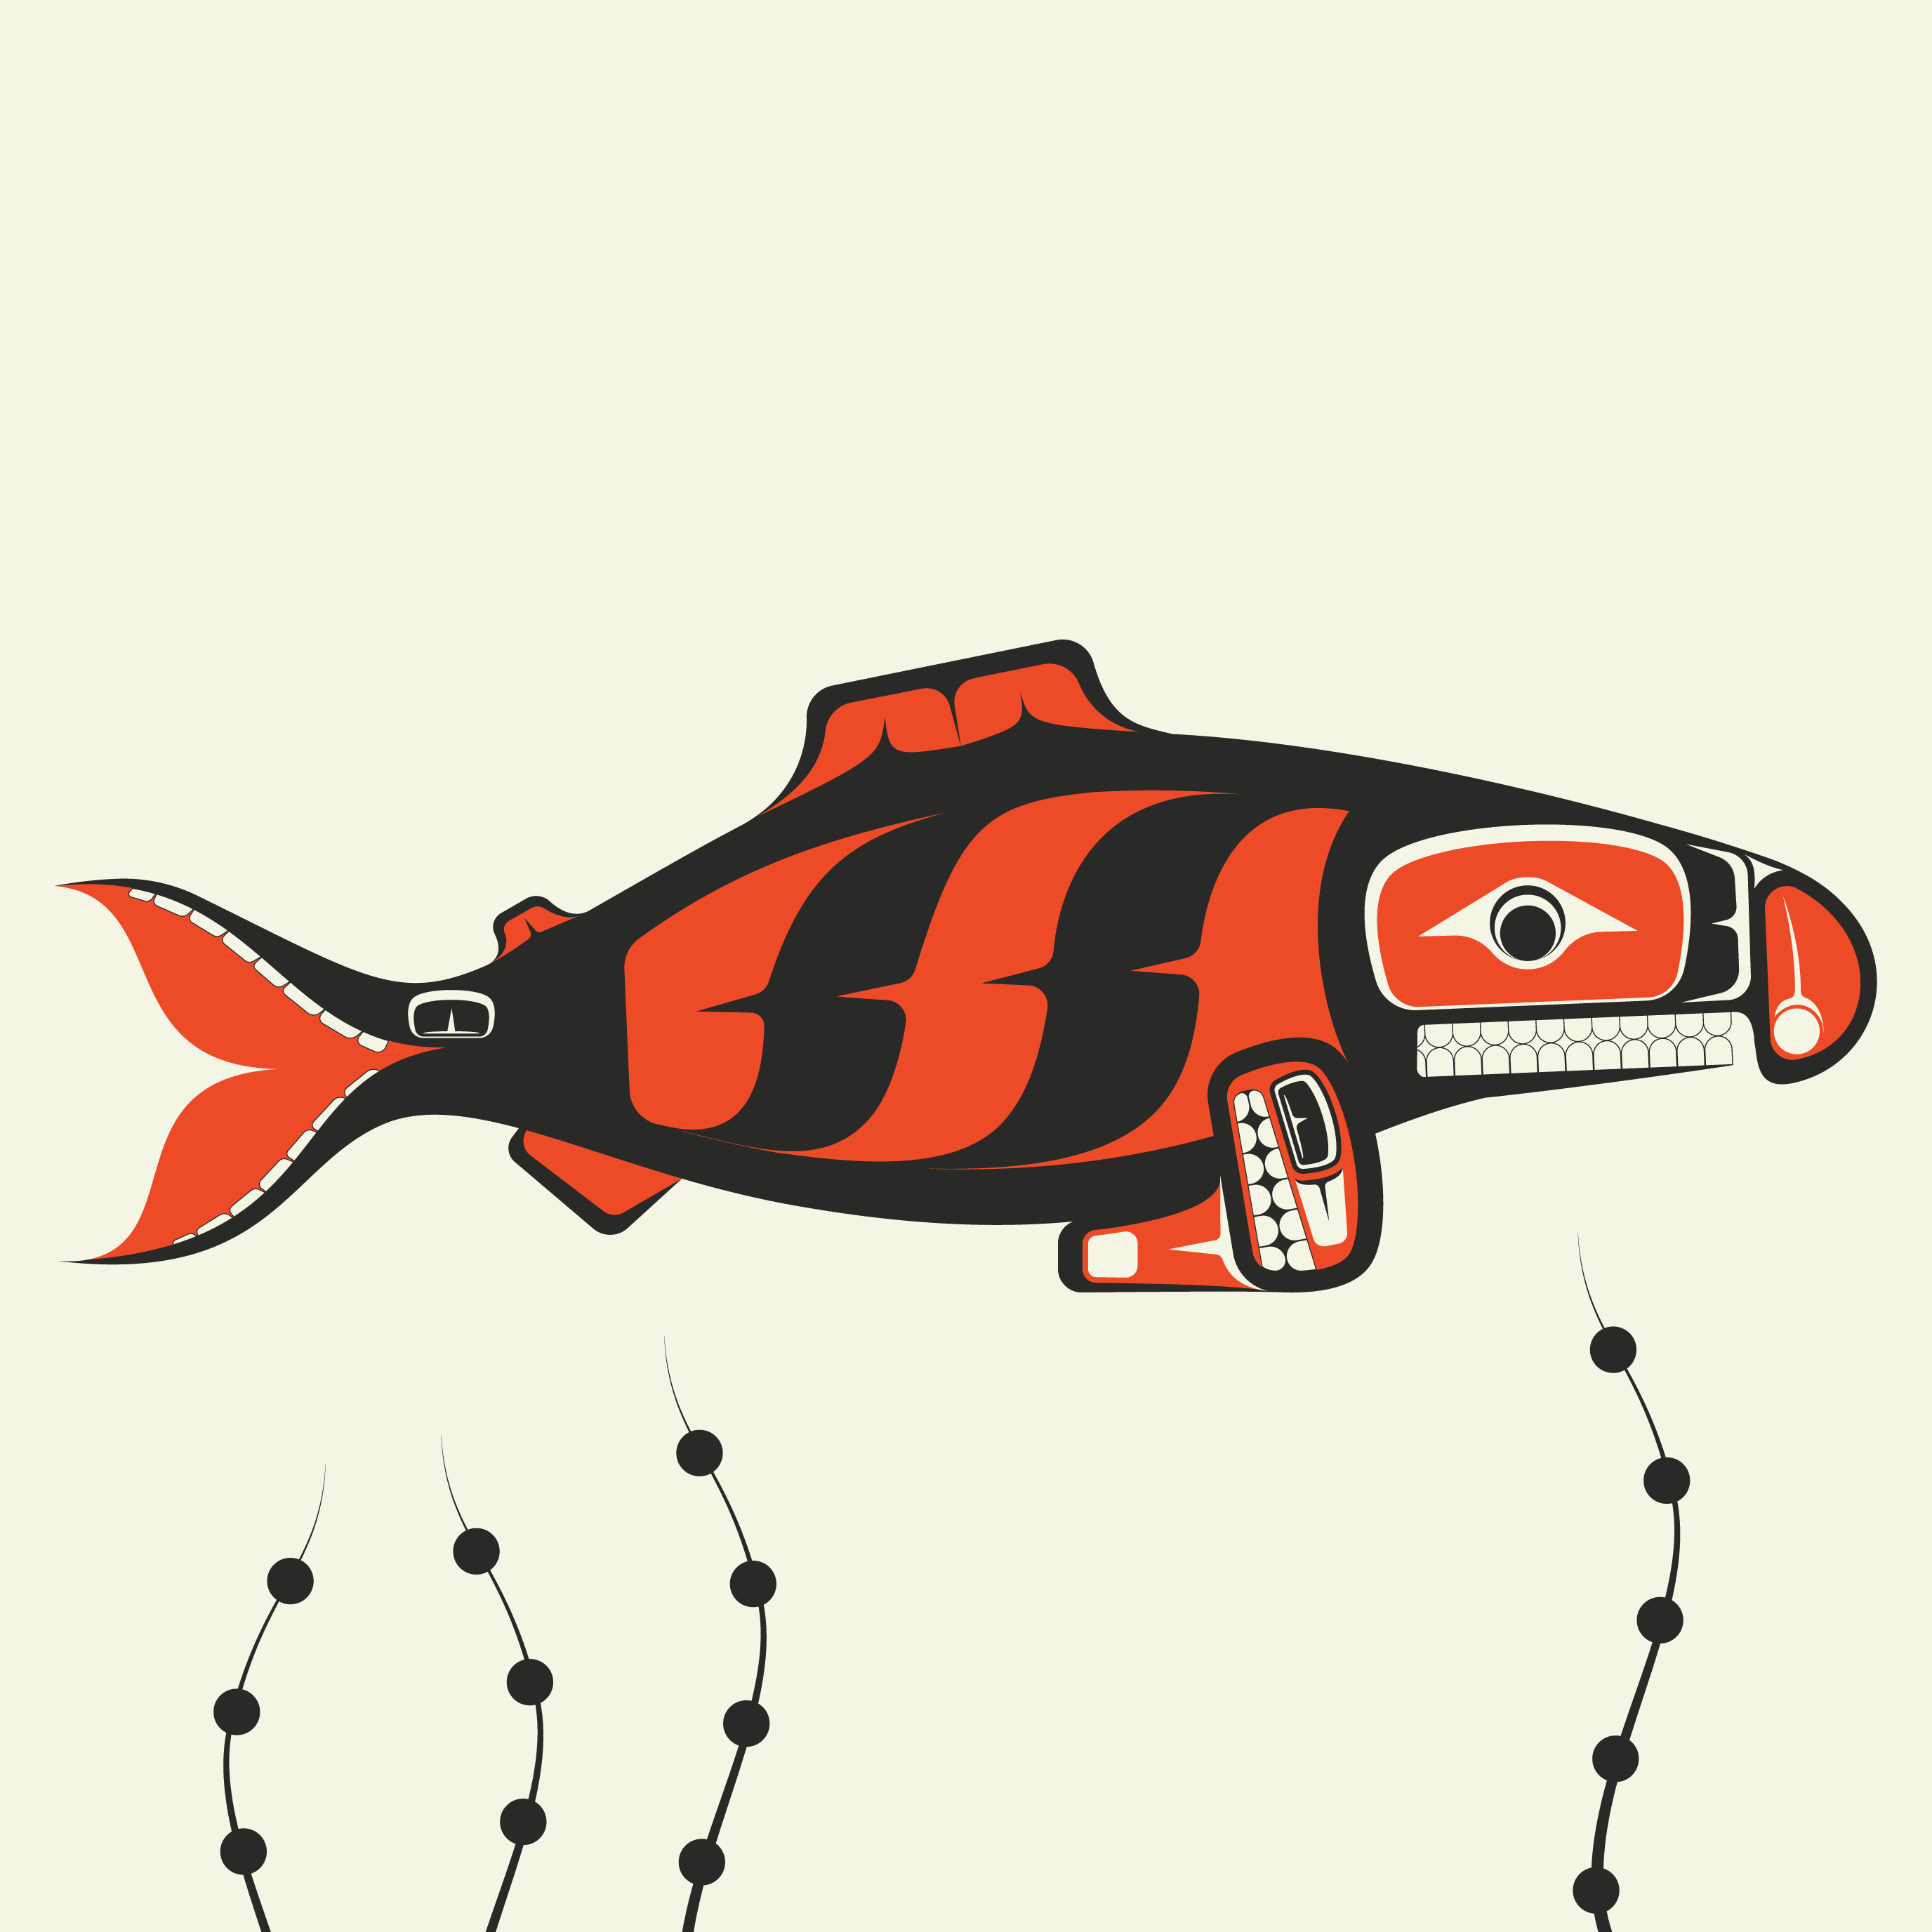 The Fish five by Brian W. a Shawnee Native American that grew up in the PNW and it's culture.